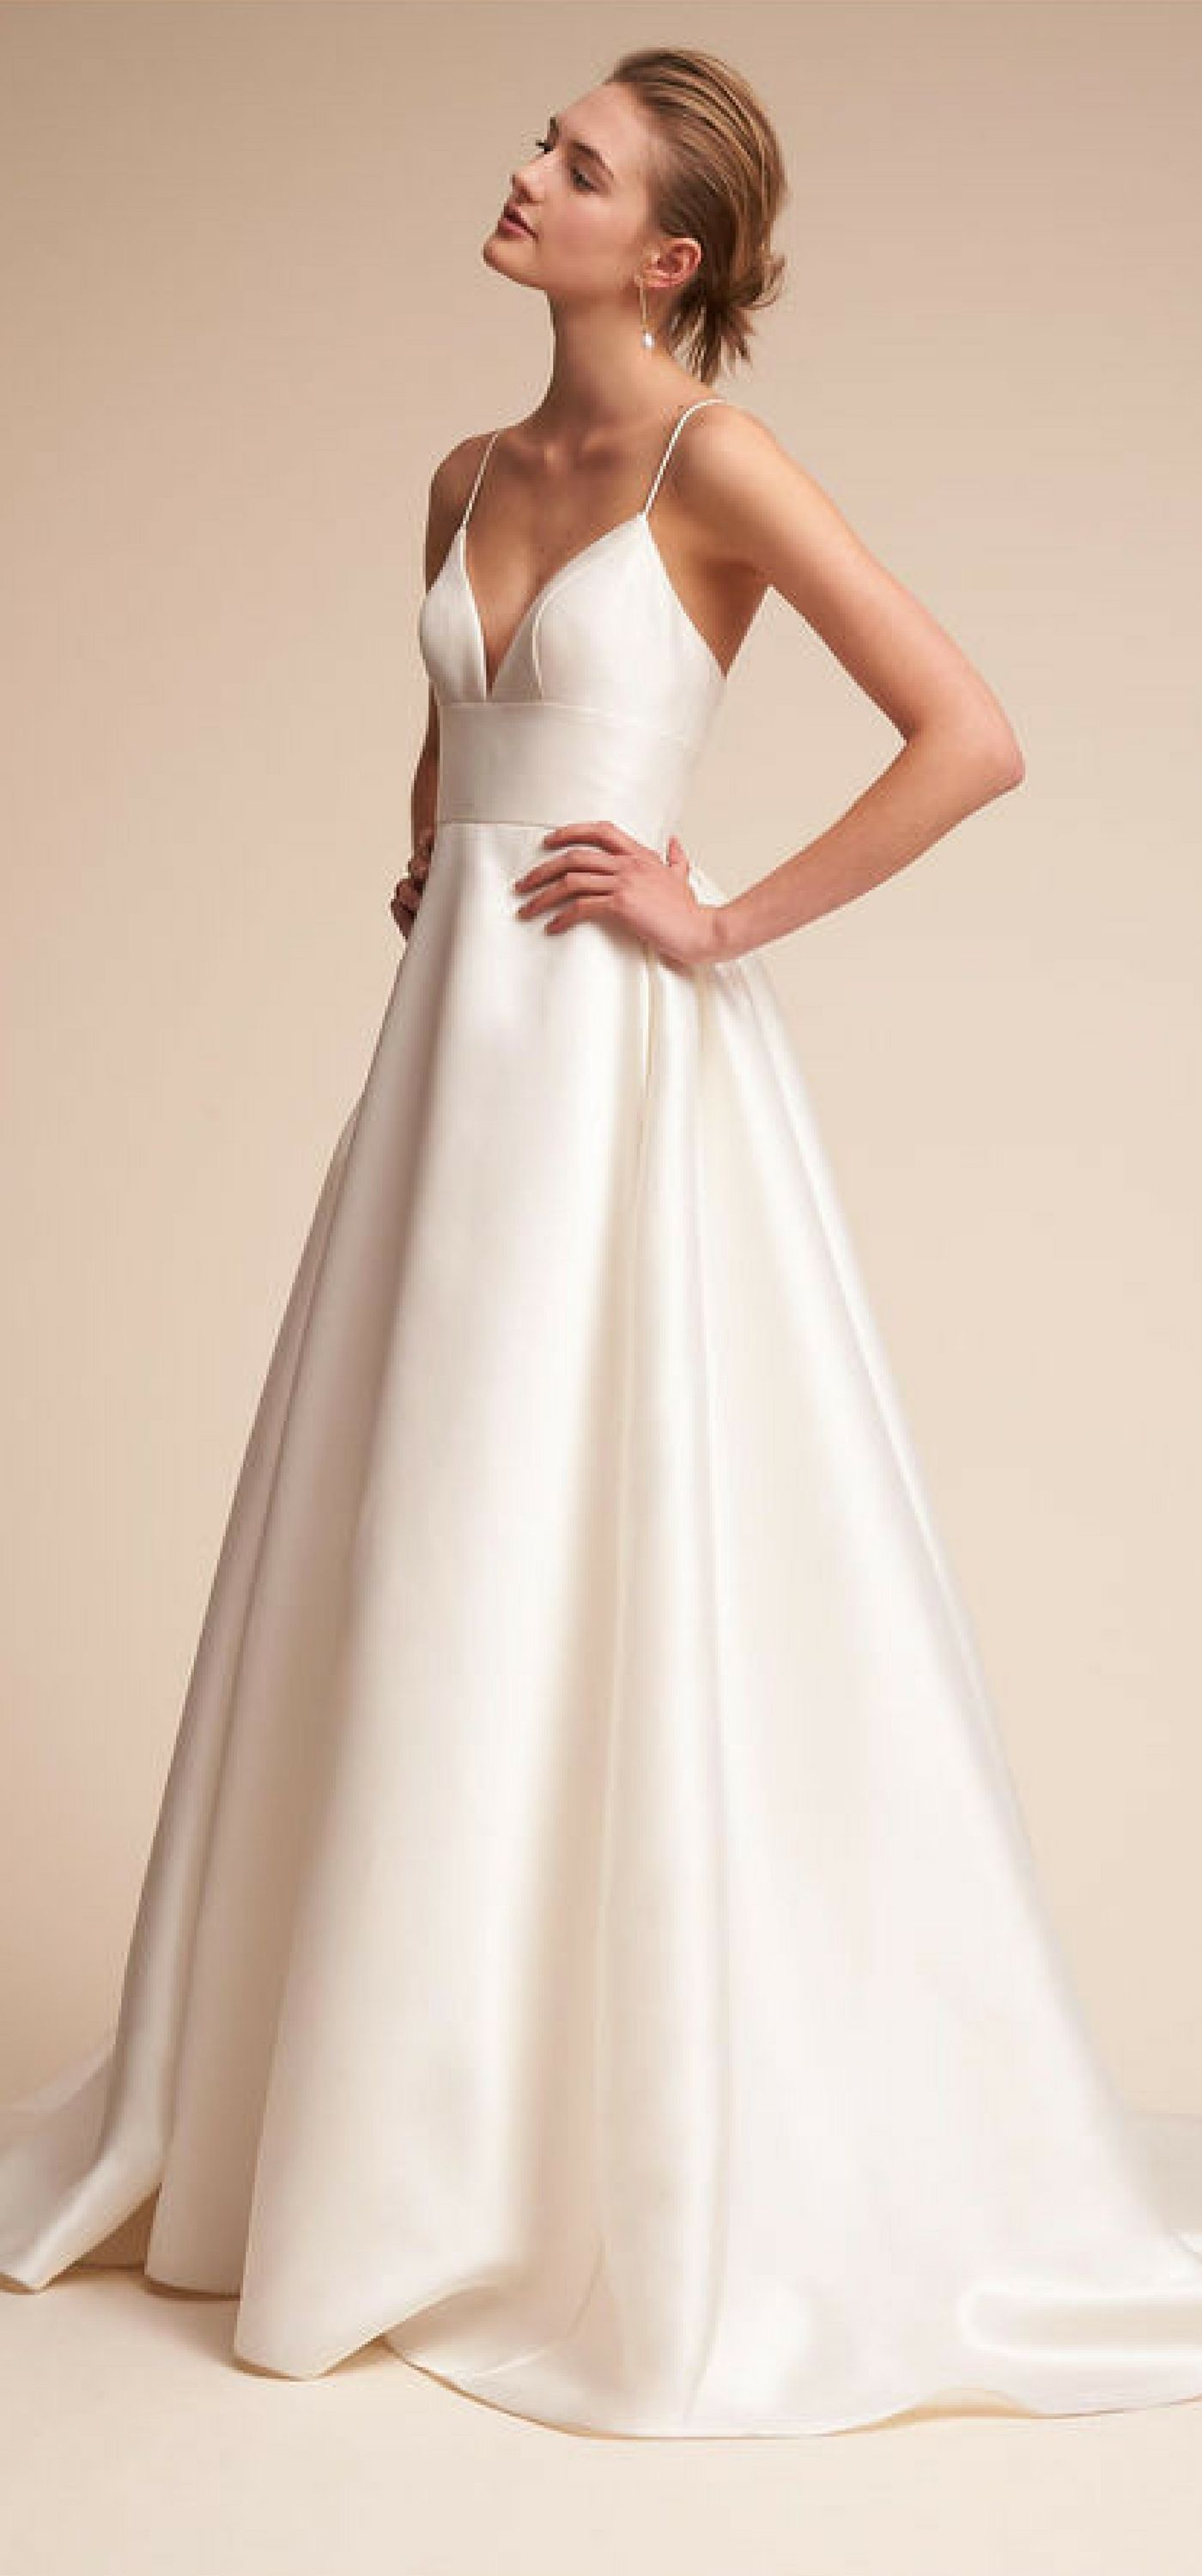 Wedding dresses springfield mo  We love this ballgownus sinfluenced edgeuitus chic and elegant